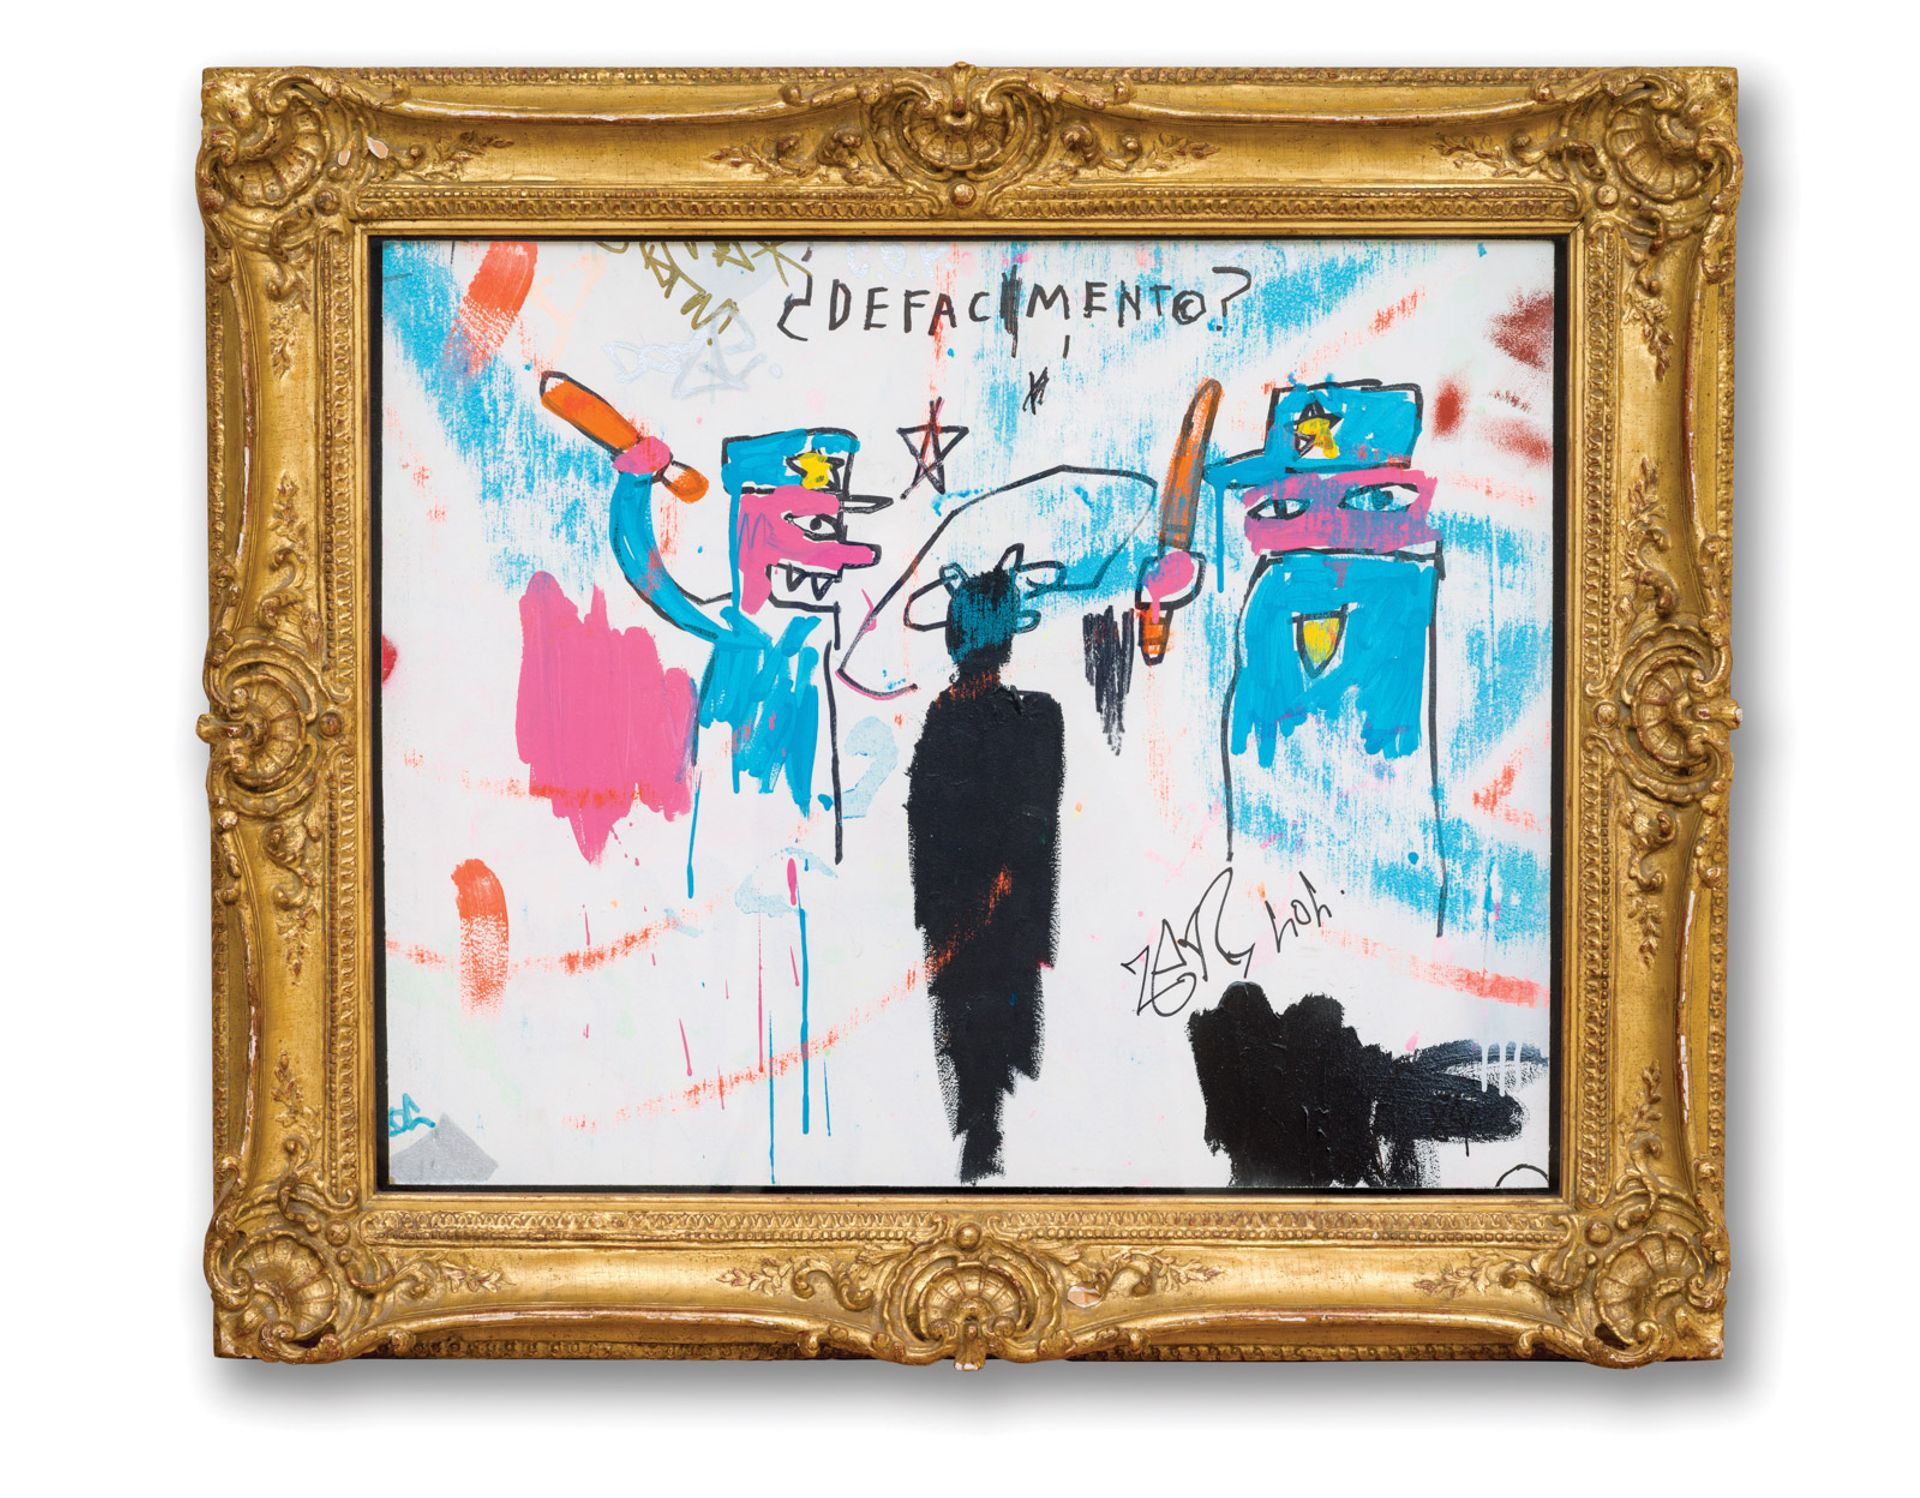 Jean-Michel Basquiat's Defacement (The Death of Michael Stewart) (1983) is the centrepiece of a show at the Guggenheim Museum in New York Photo: Allison Chipak © Solomon R. Guggenheim Foundation